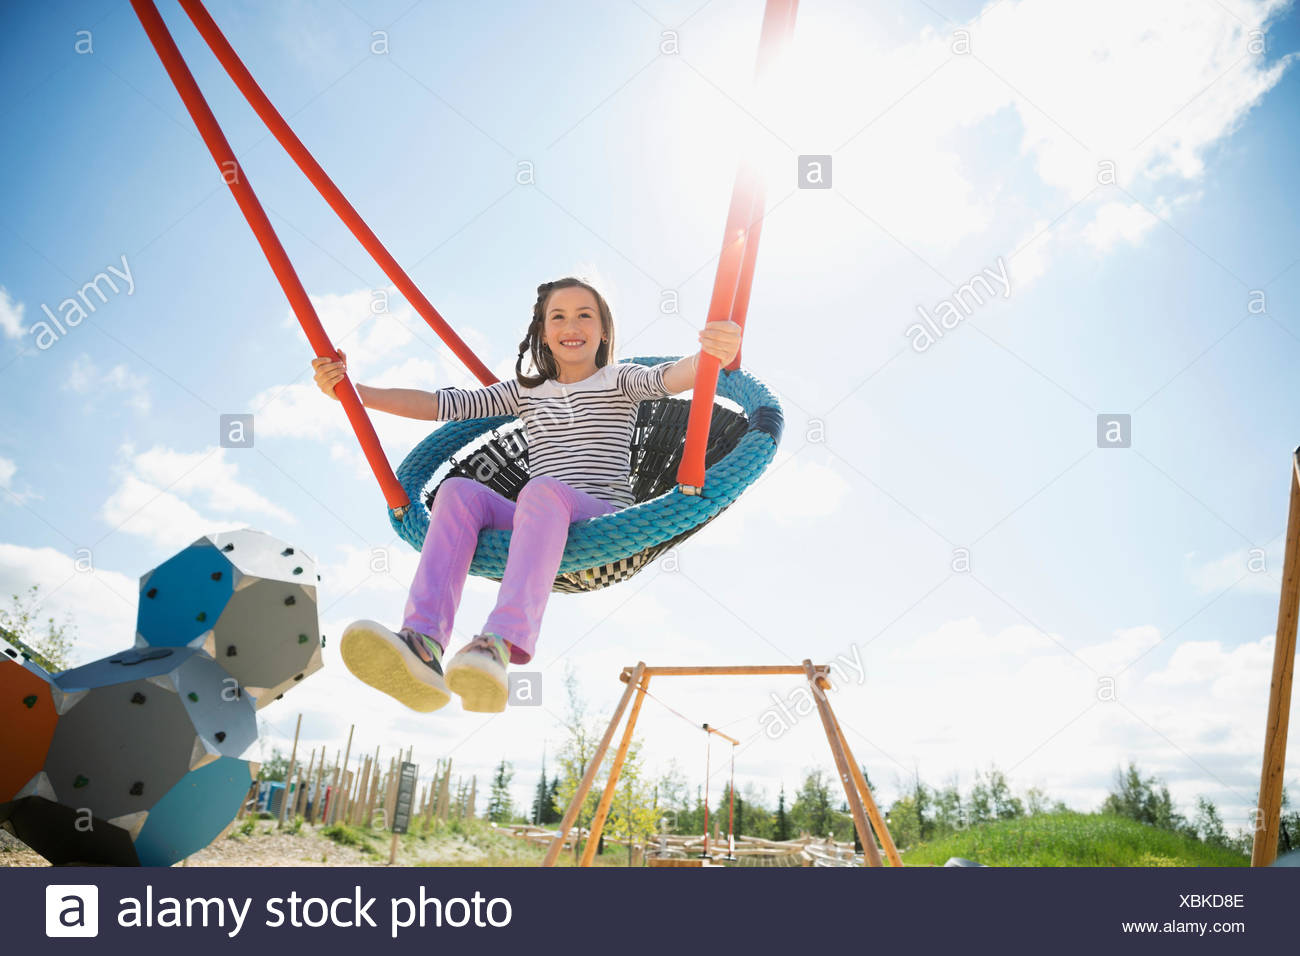 Carefree girl swinging à aire ensoleillée Photo Stock